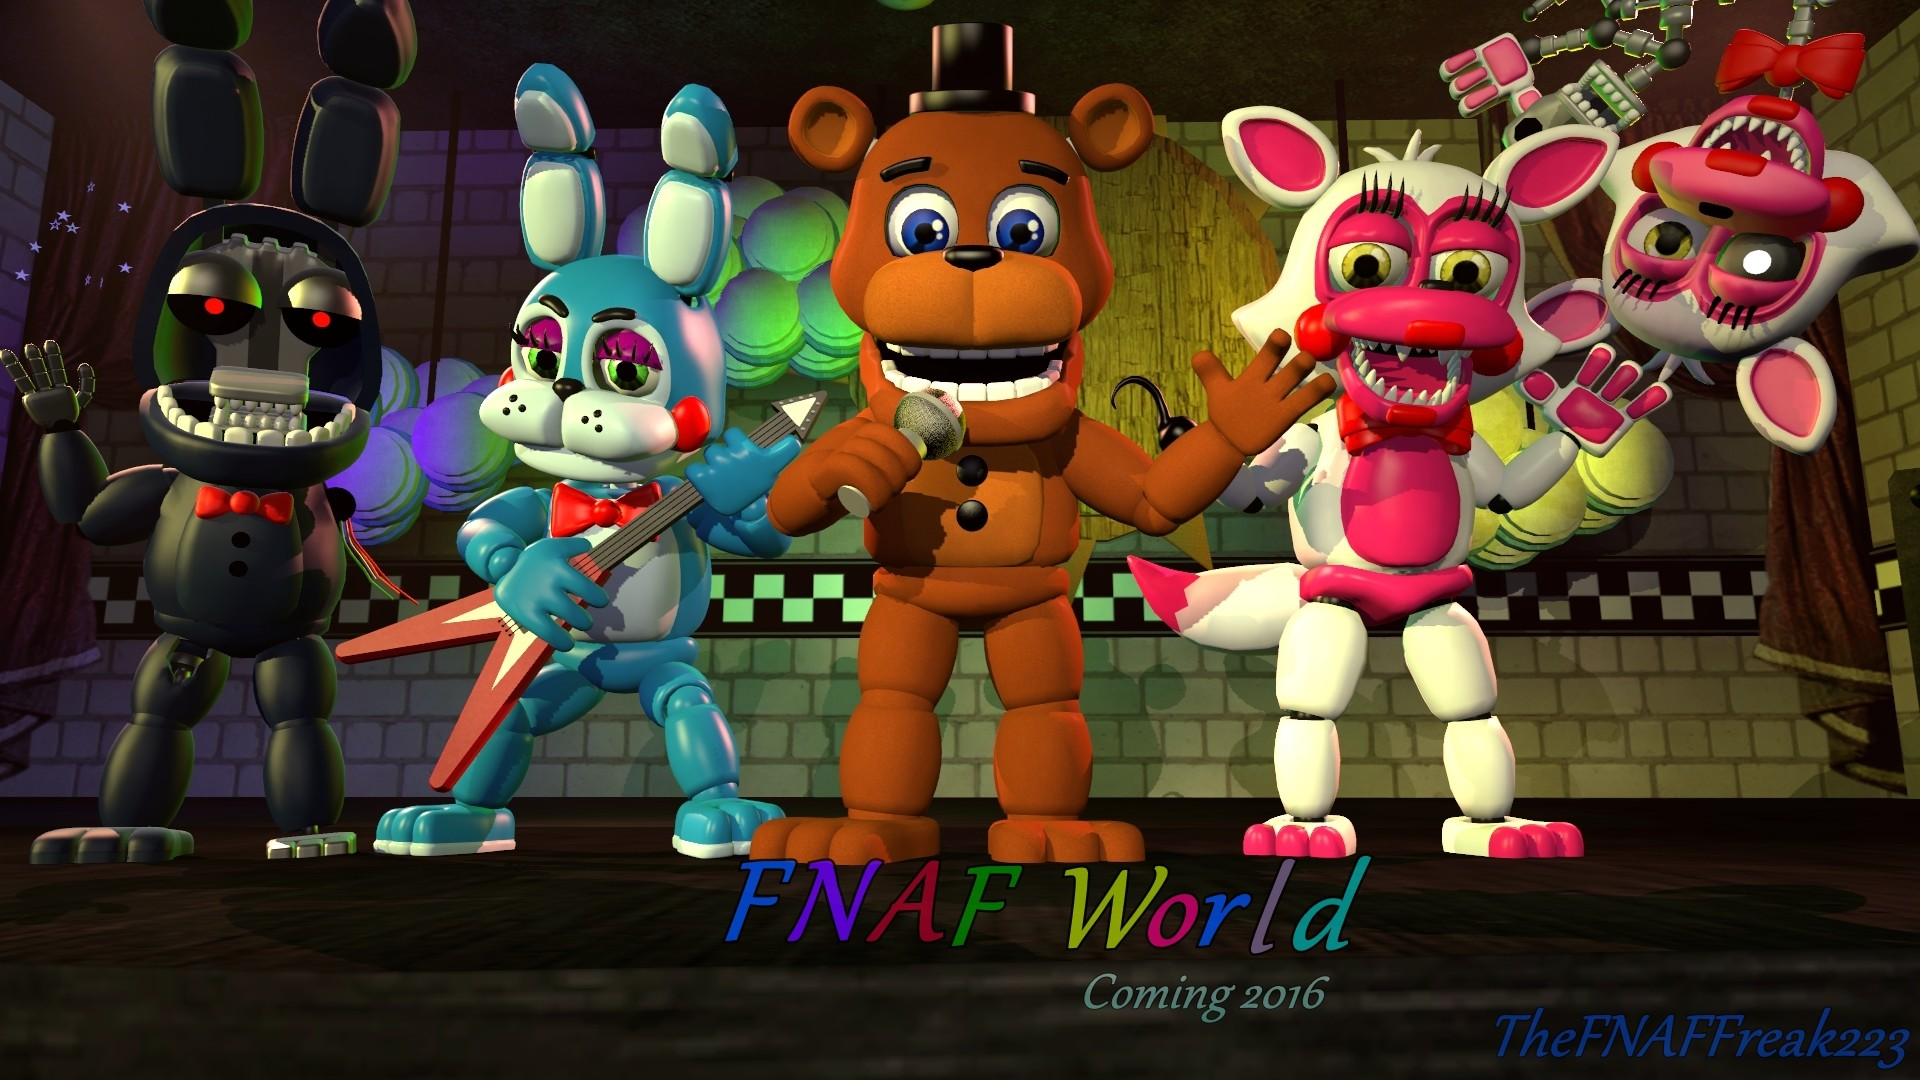 Res: 1920x1080, Incredible Pictures Collection: Fnaf World Desktop Wallpapers